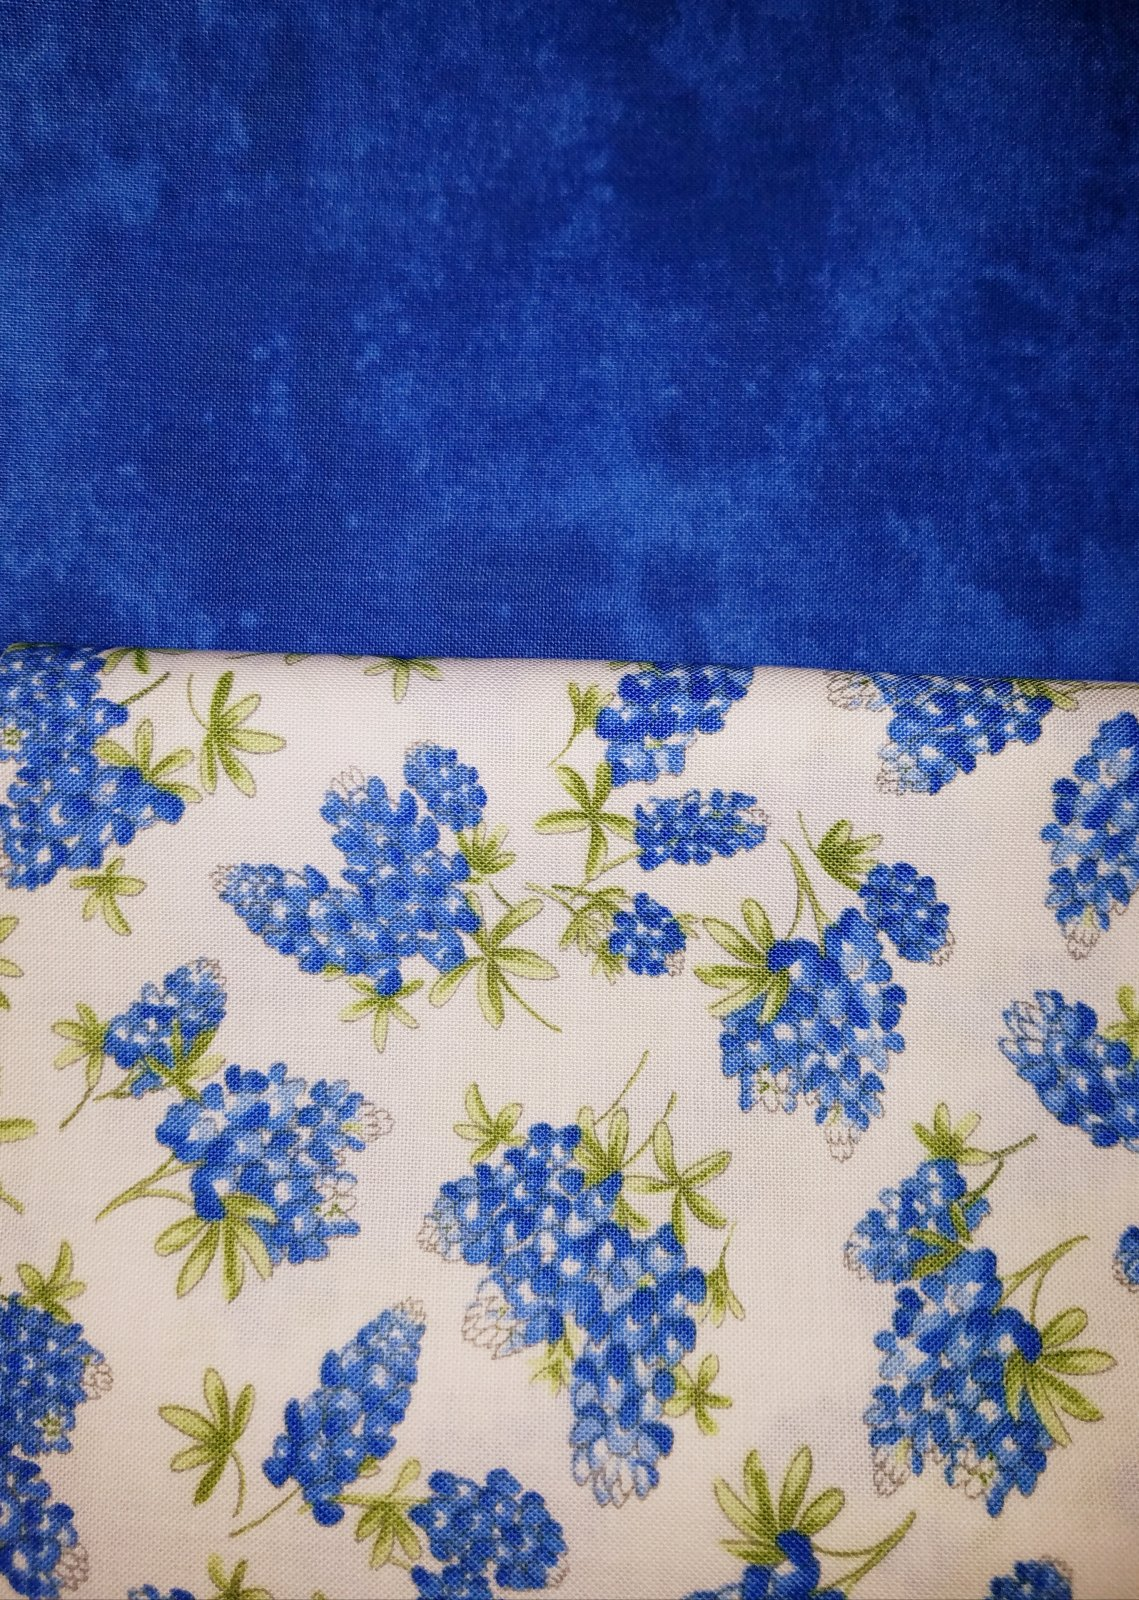 Time To Quilt Block One - Floral